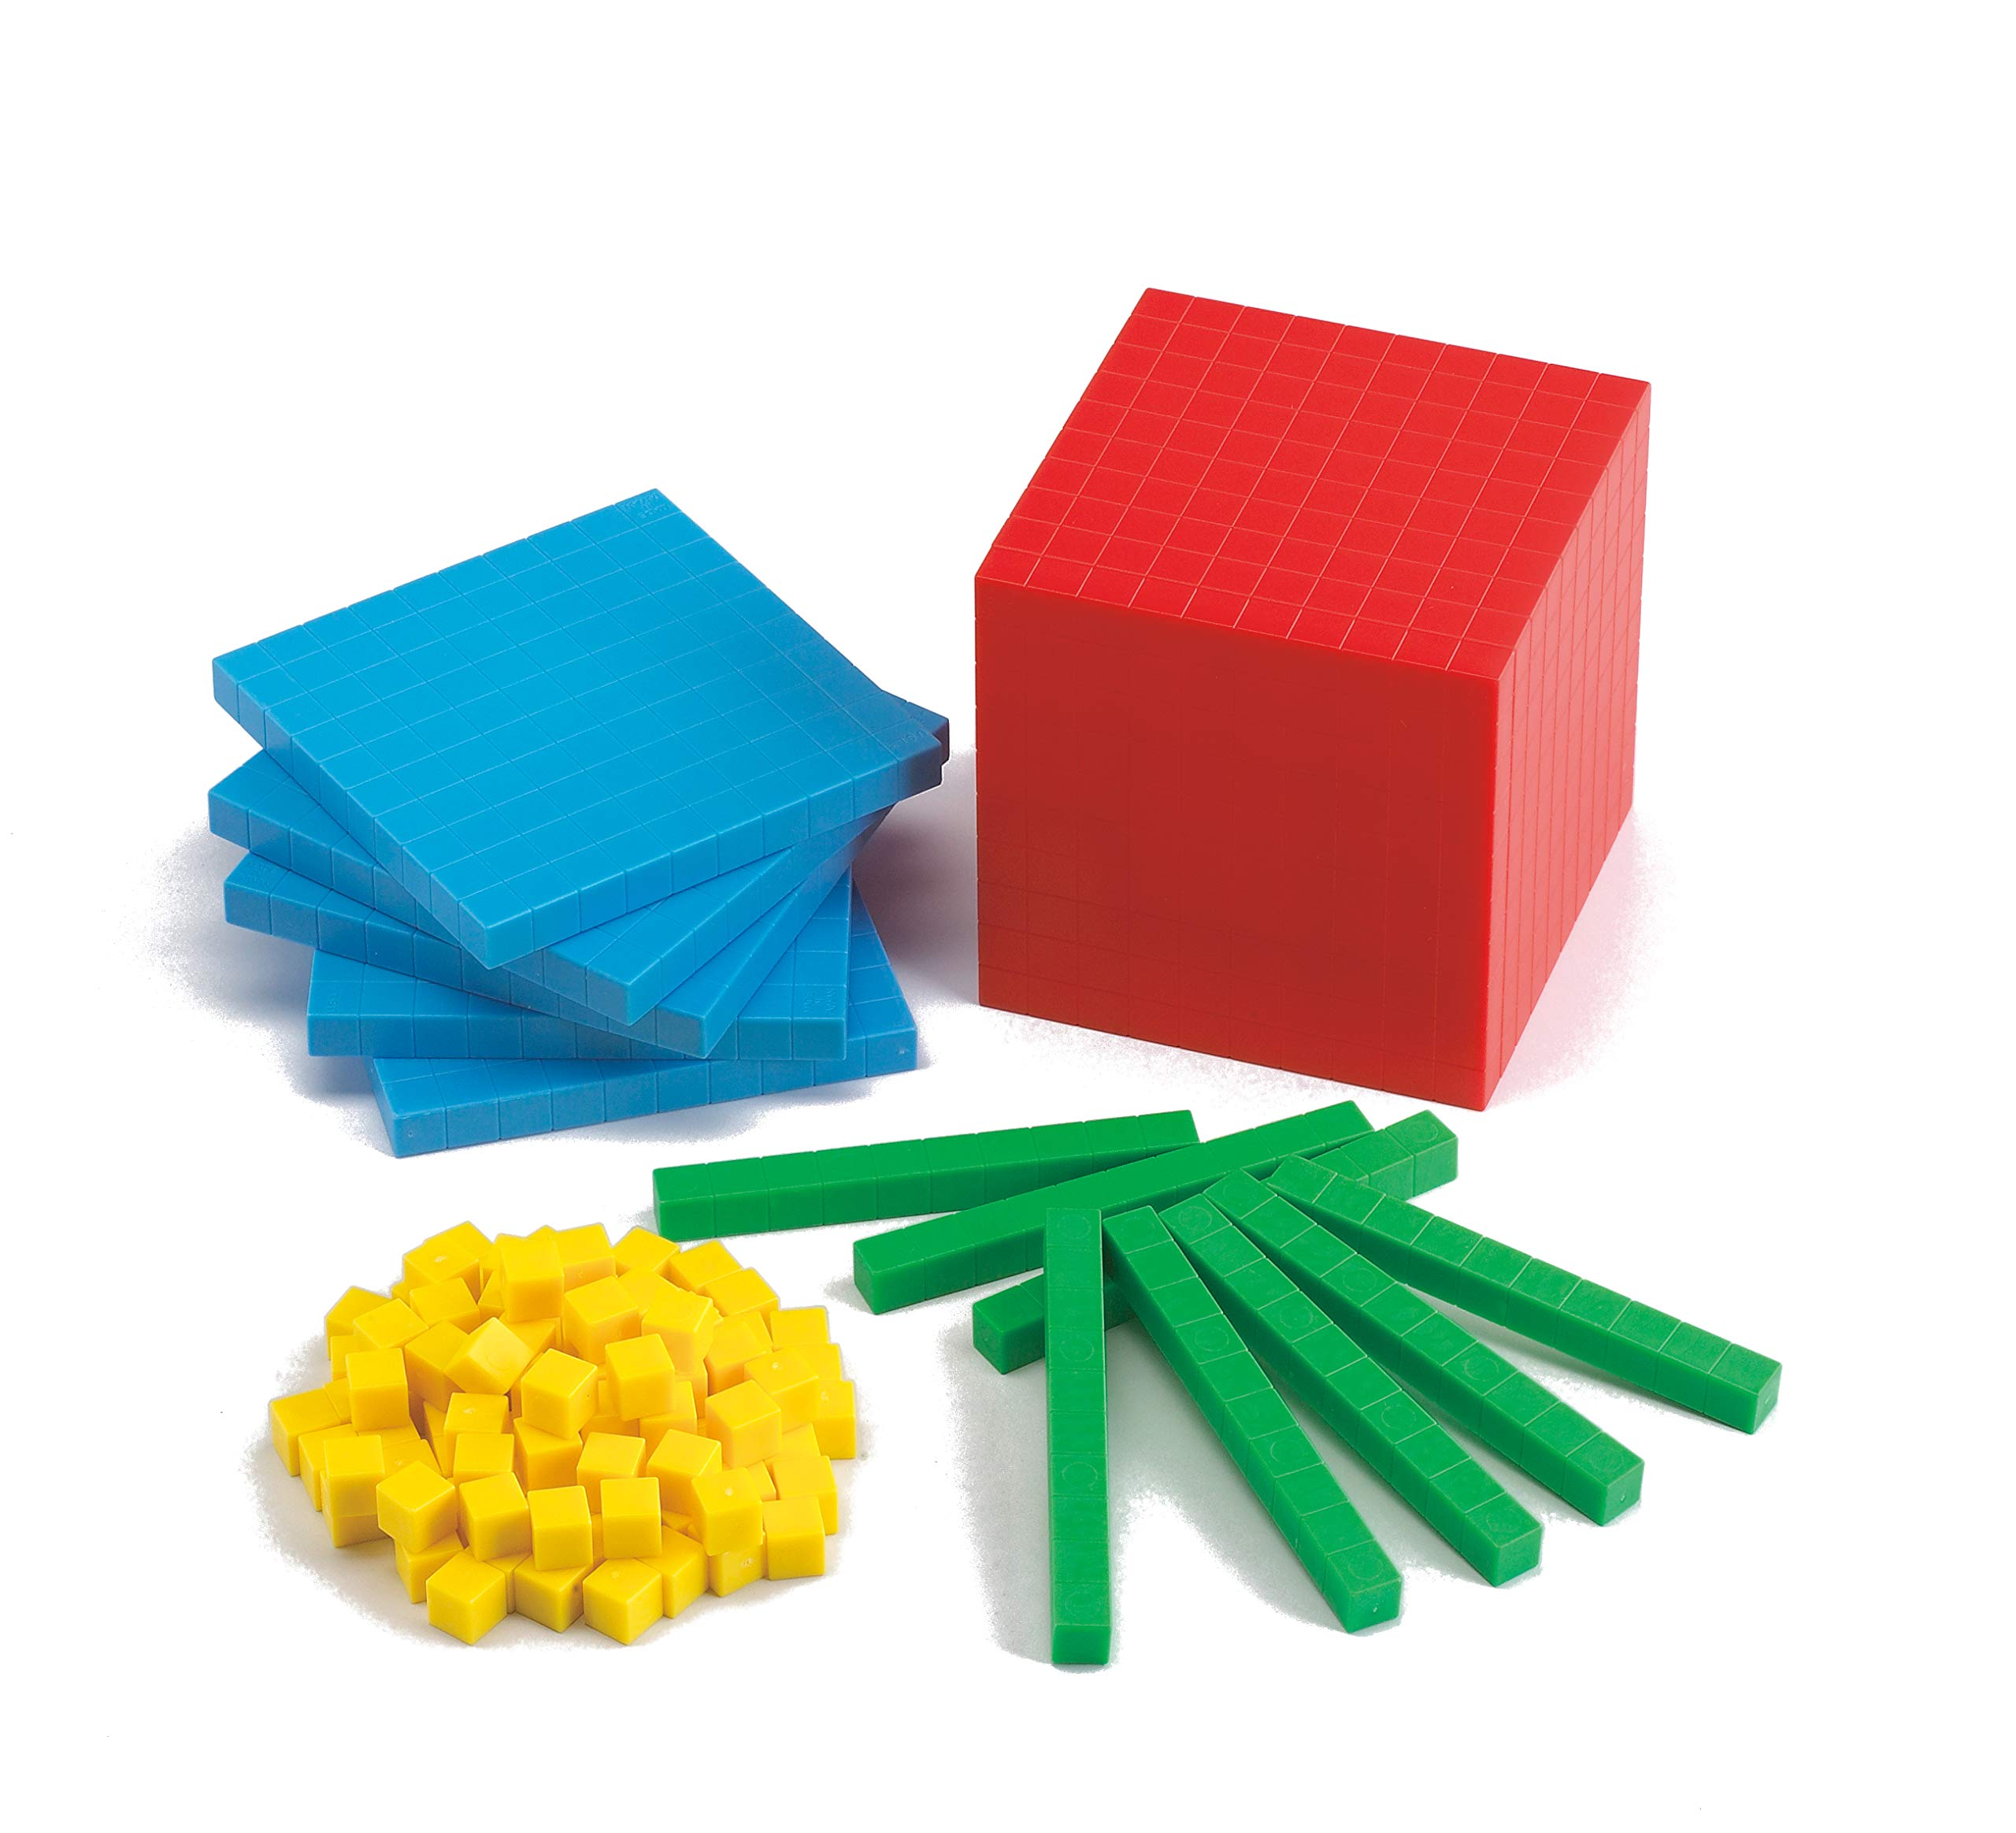 edx Education Four Color Plastic Base Ten Set - Set of 121 - Early Math Manipulative for Kids - Teach Number Concepts, Place Value and Volume by edxeducation